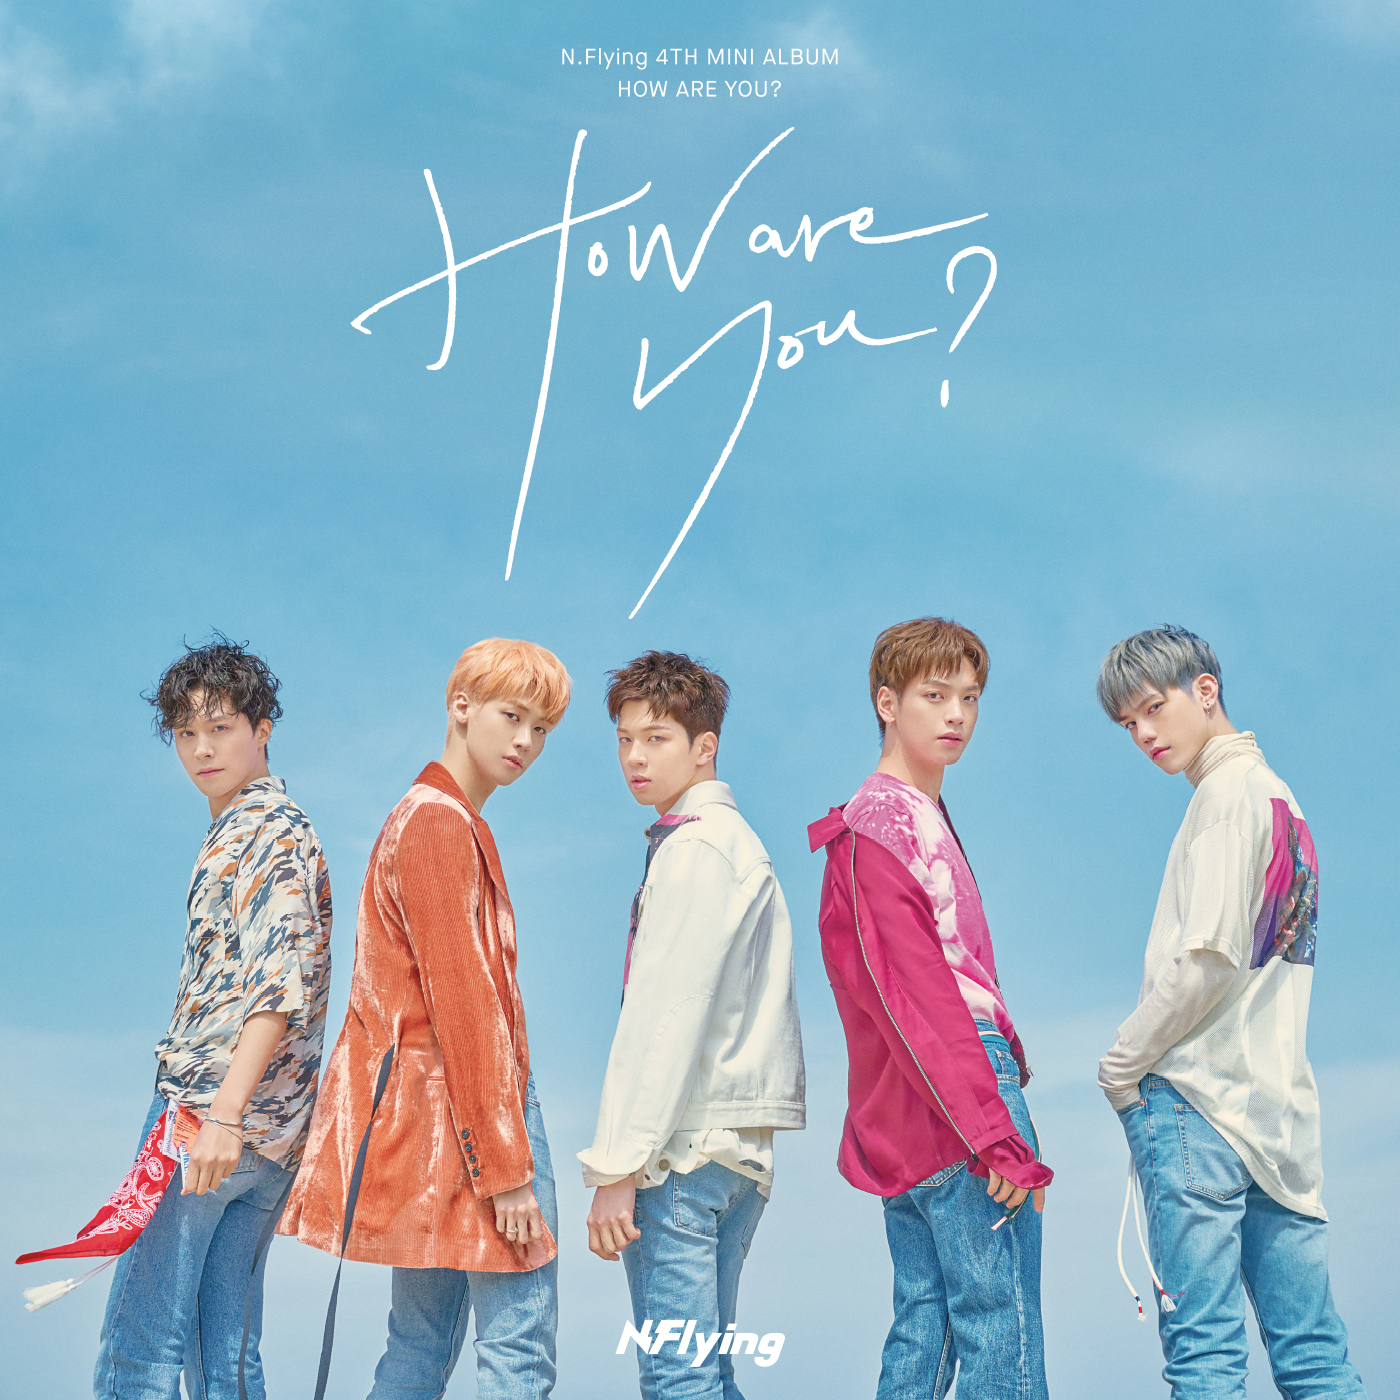 How Are You? (N.Flying)